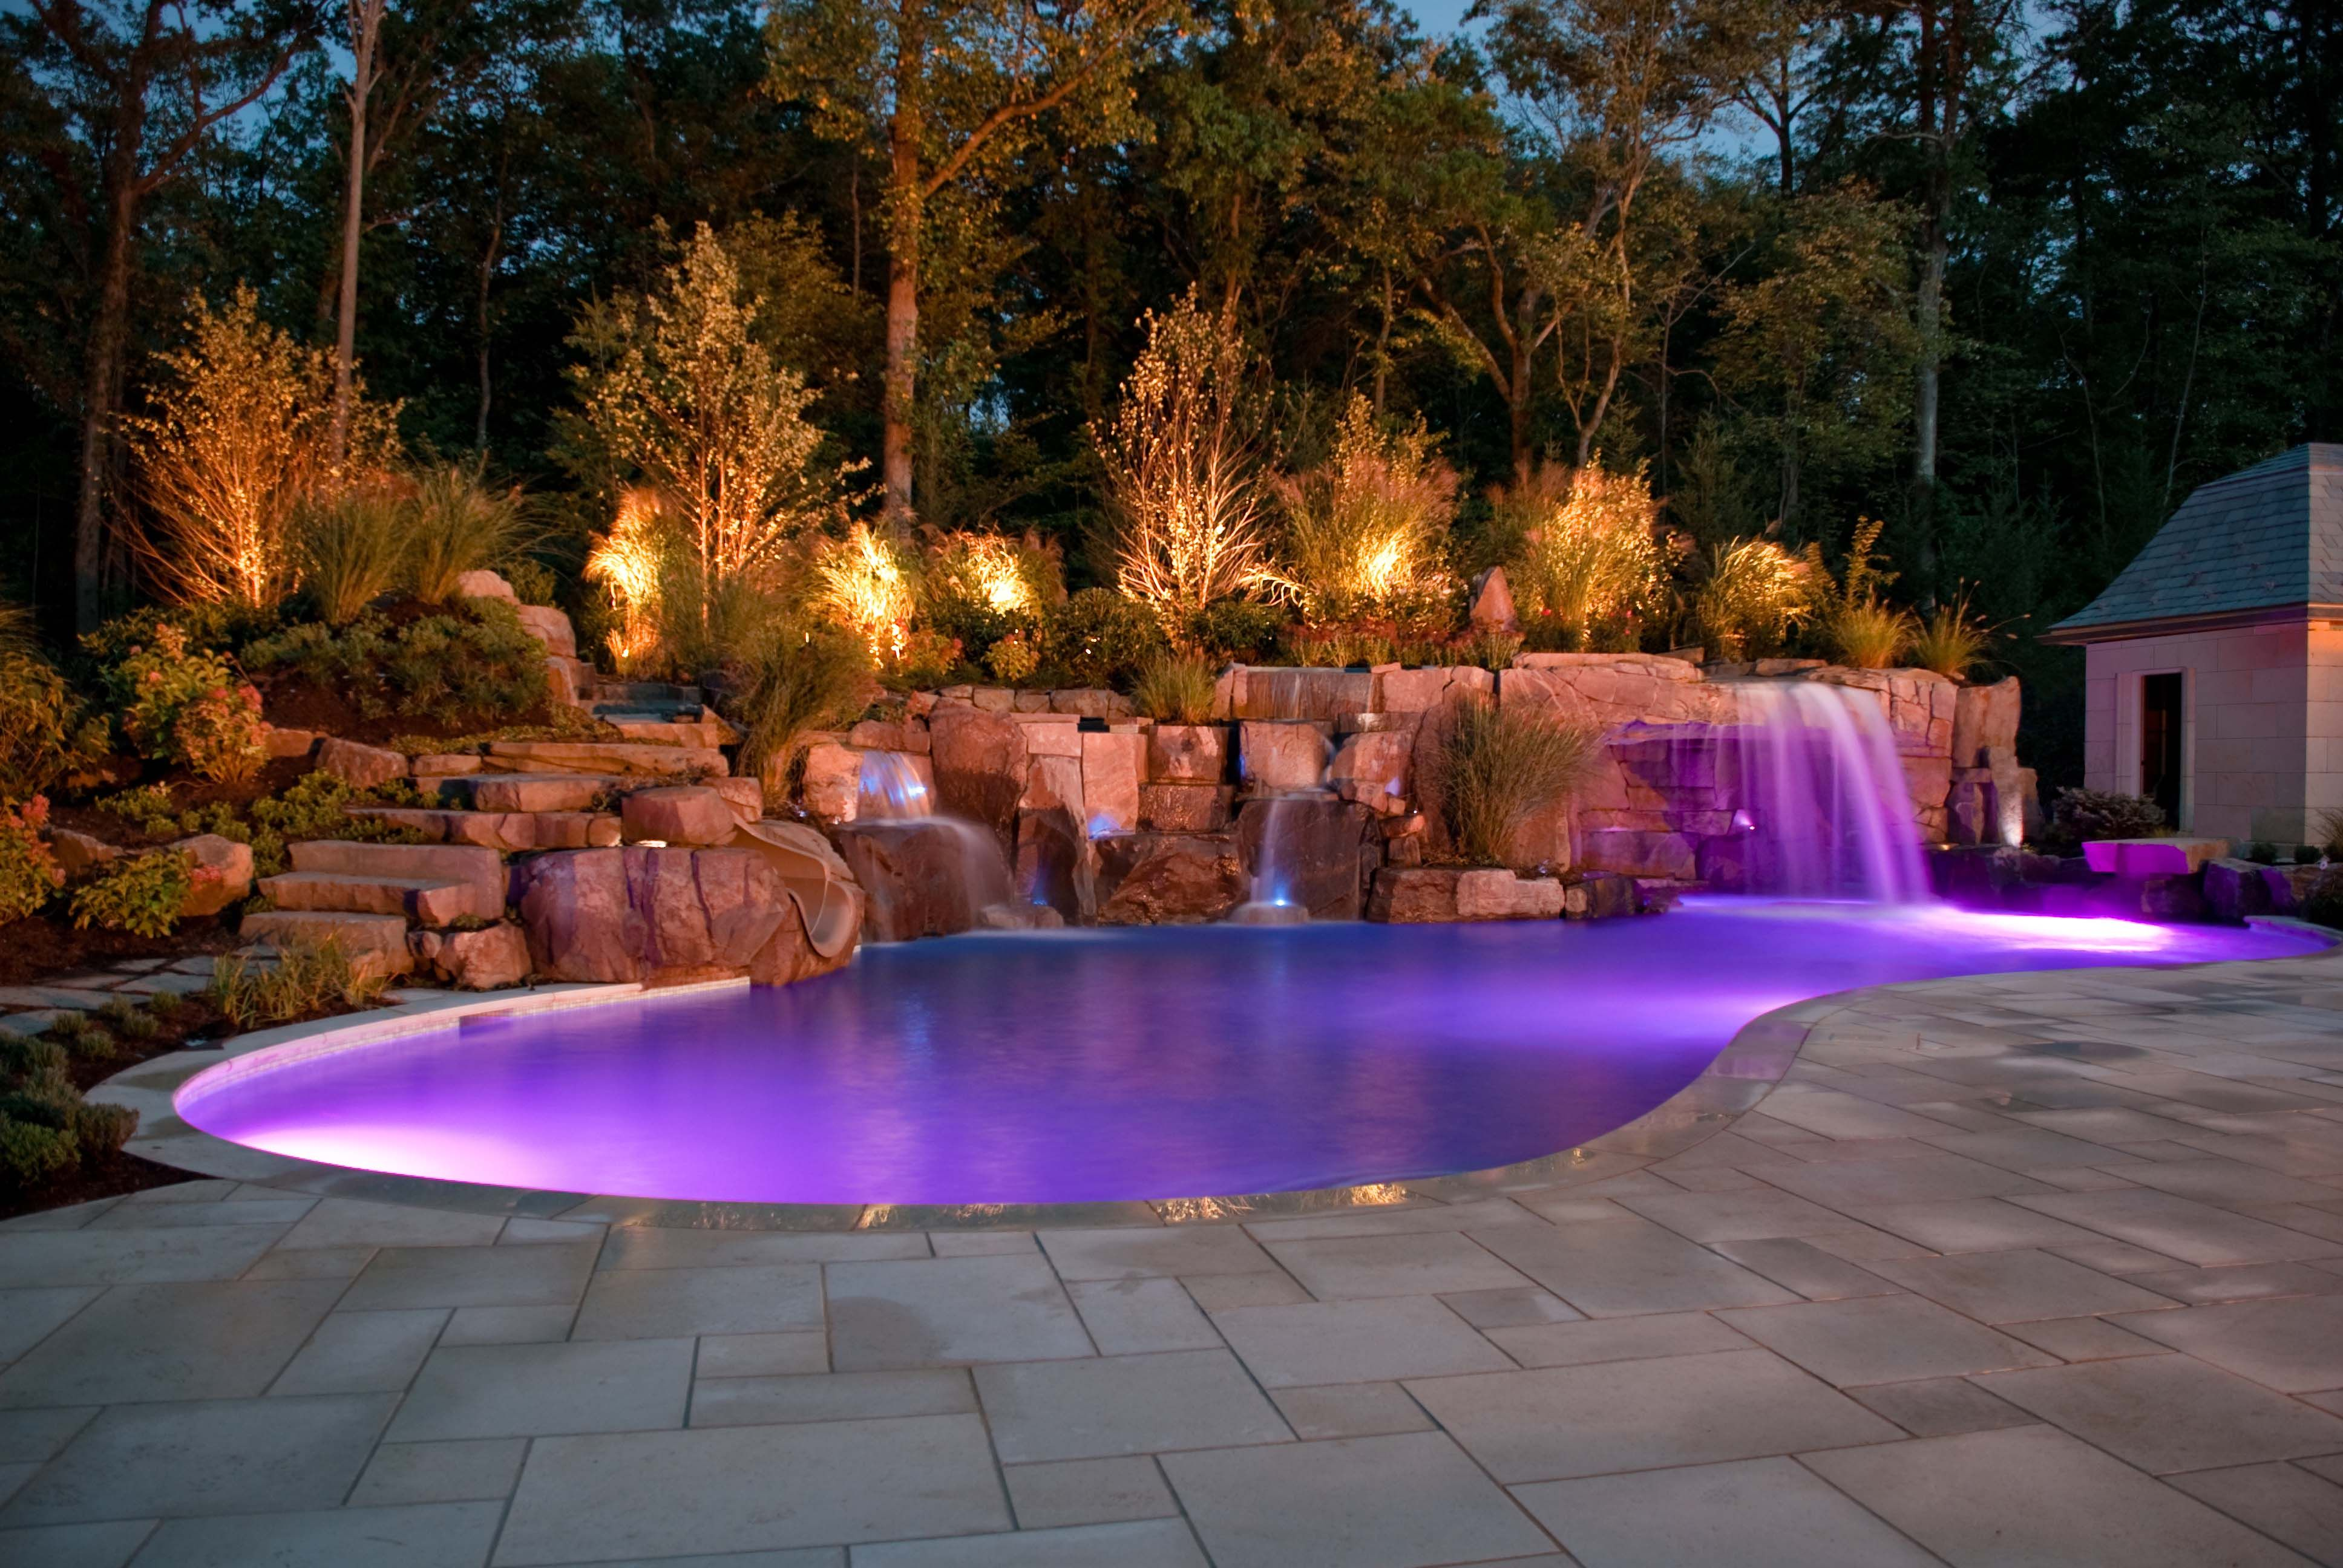 19 best images about pool ideas on pinterest swimming pool designs waterfalls and mosaic stones